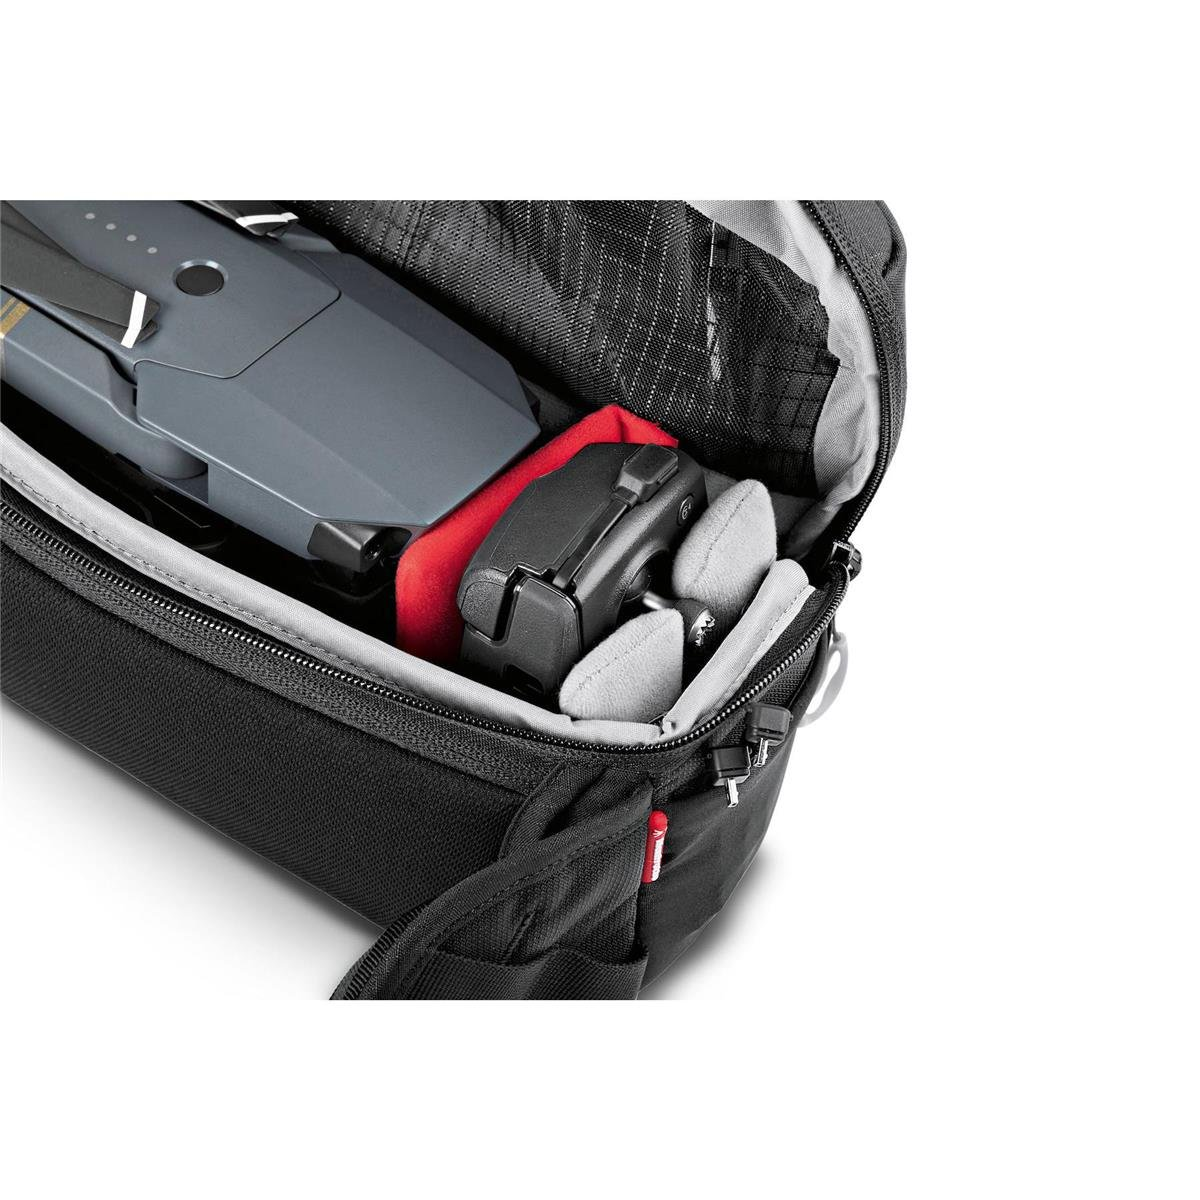 Manfrotto Aviator M1 Sling Bag for DJI Mavic Drone by Manfrotto (Image #8)